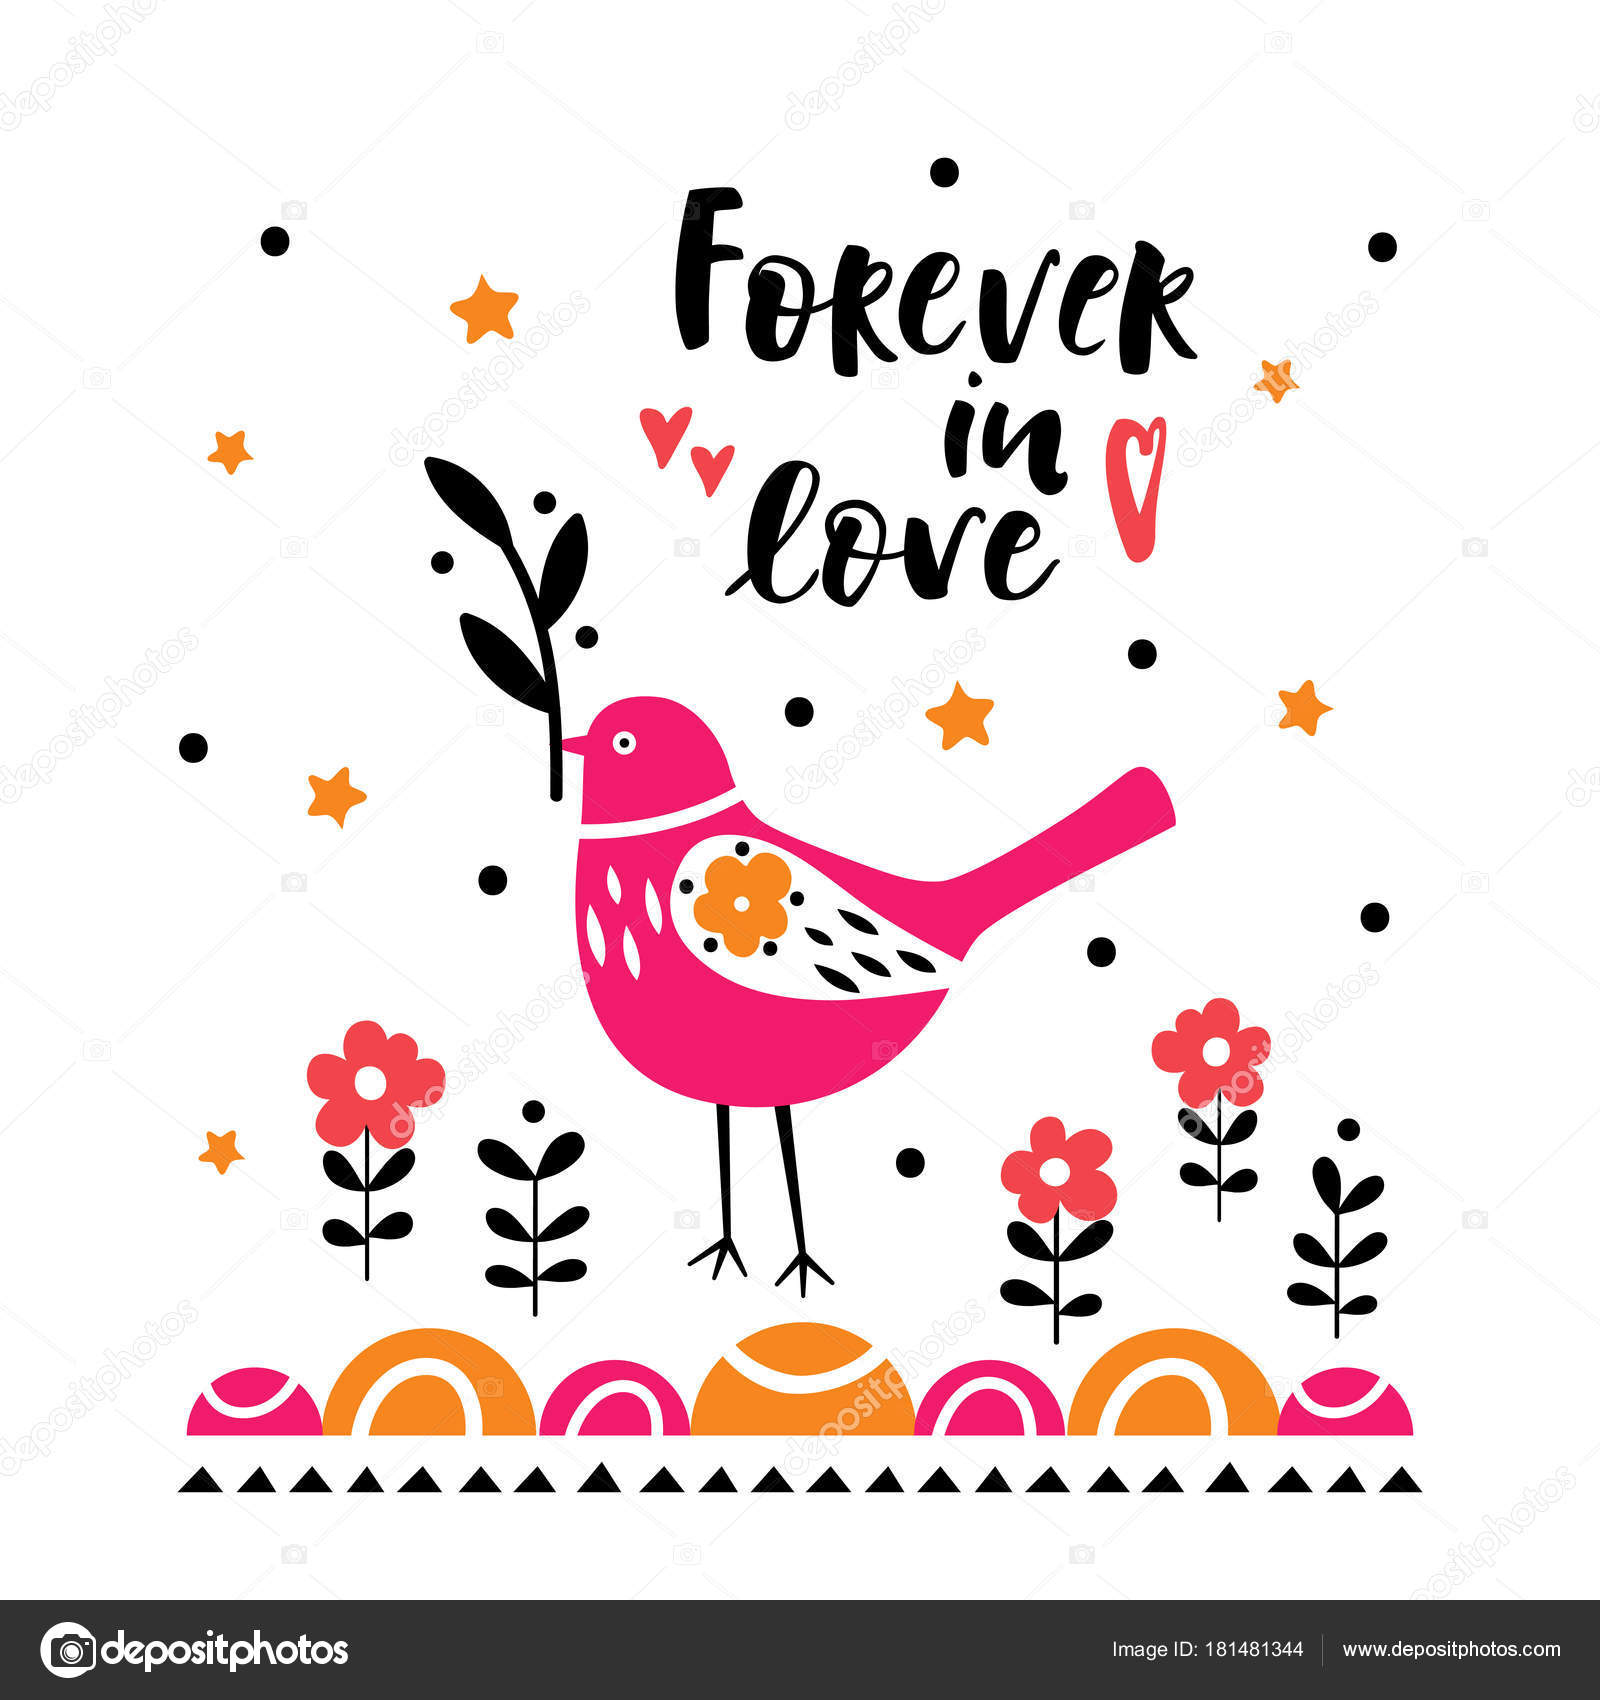 Postcard with cute bird illustration for childrens prints postcard with cute bird illustration for childrens prints greetings posters t shirt packaging invites postcard with forever in love text m4hsunfo